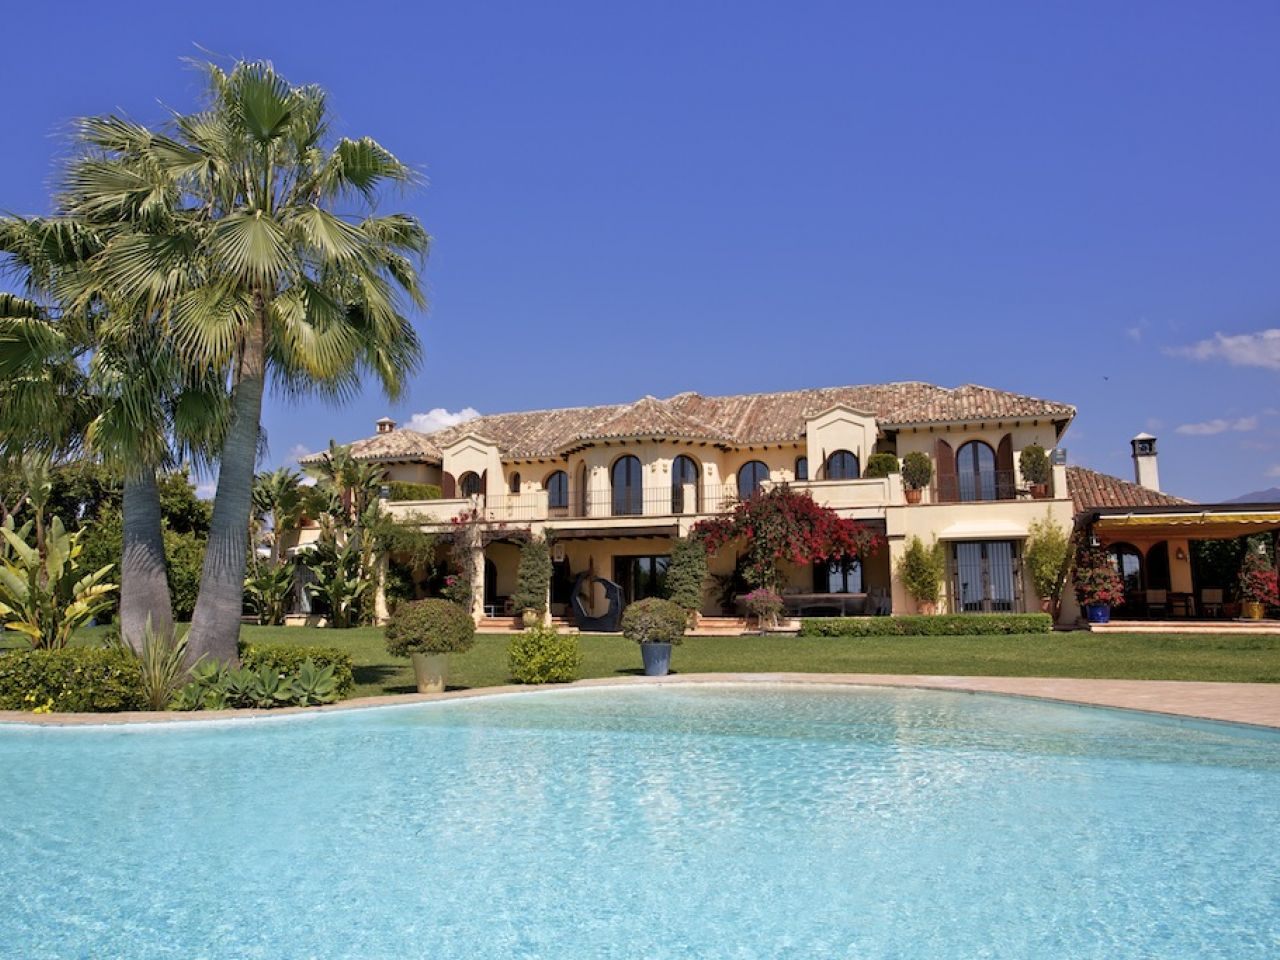 Single Family Home for Sale at El Paraiso Barronal Estepona, Costa Del Sol 29680 Spain